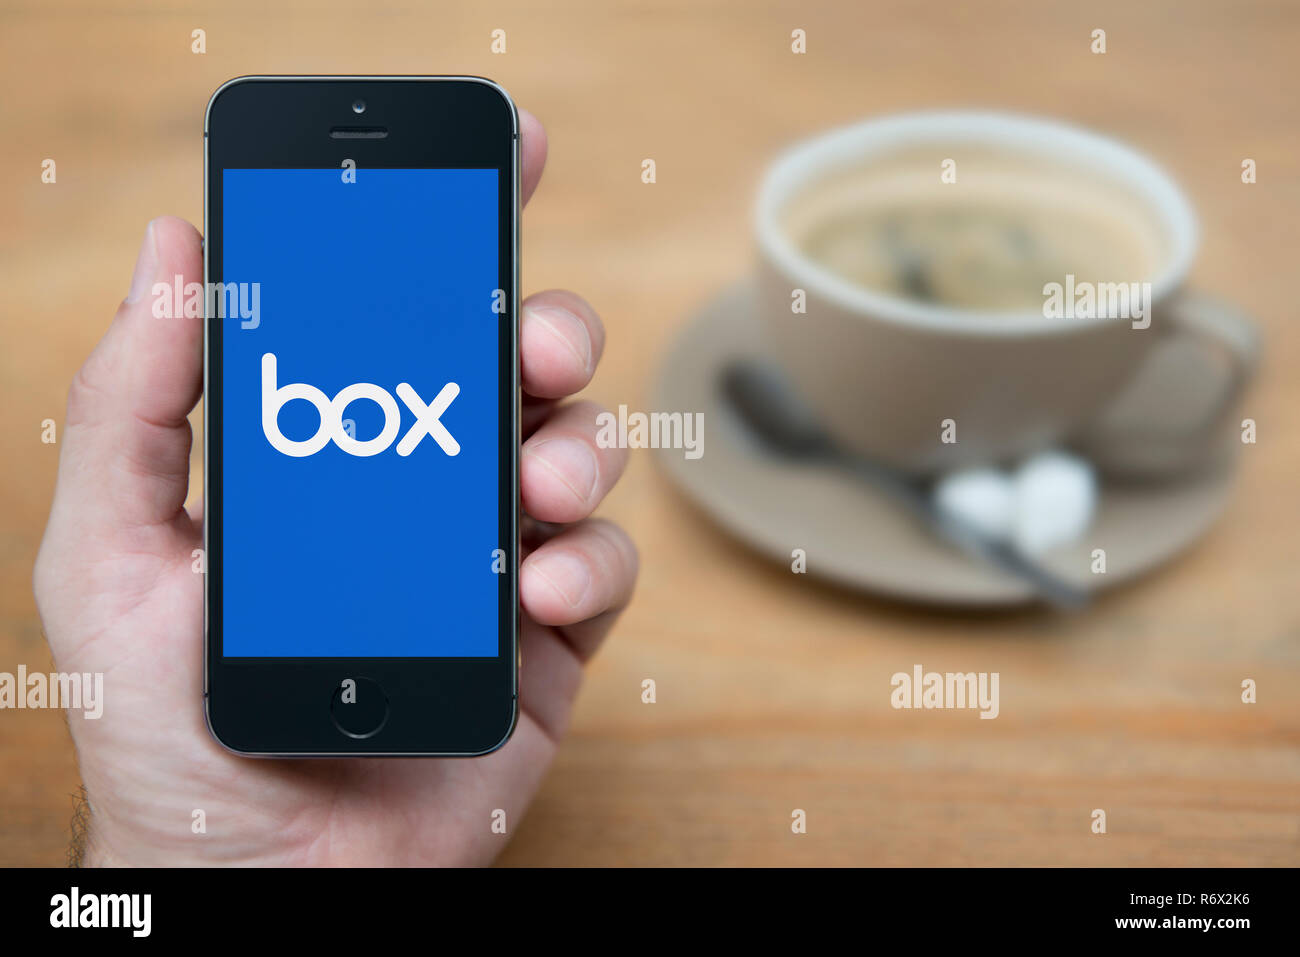 A man looks at his iPhone which displays the Box logo (Editorial use only). - Stock Image